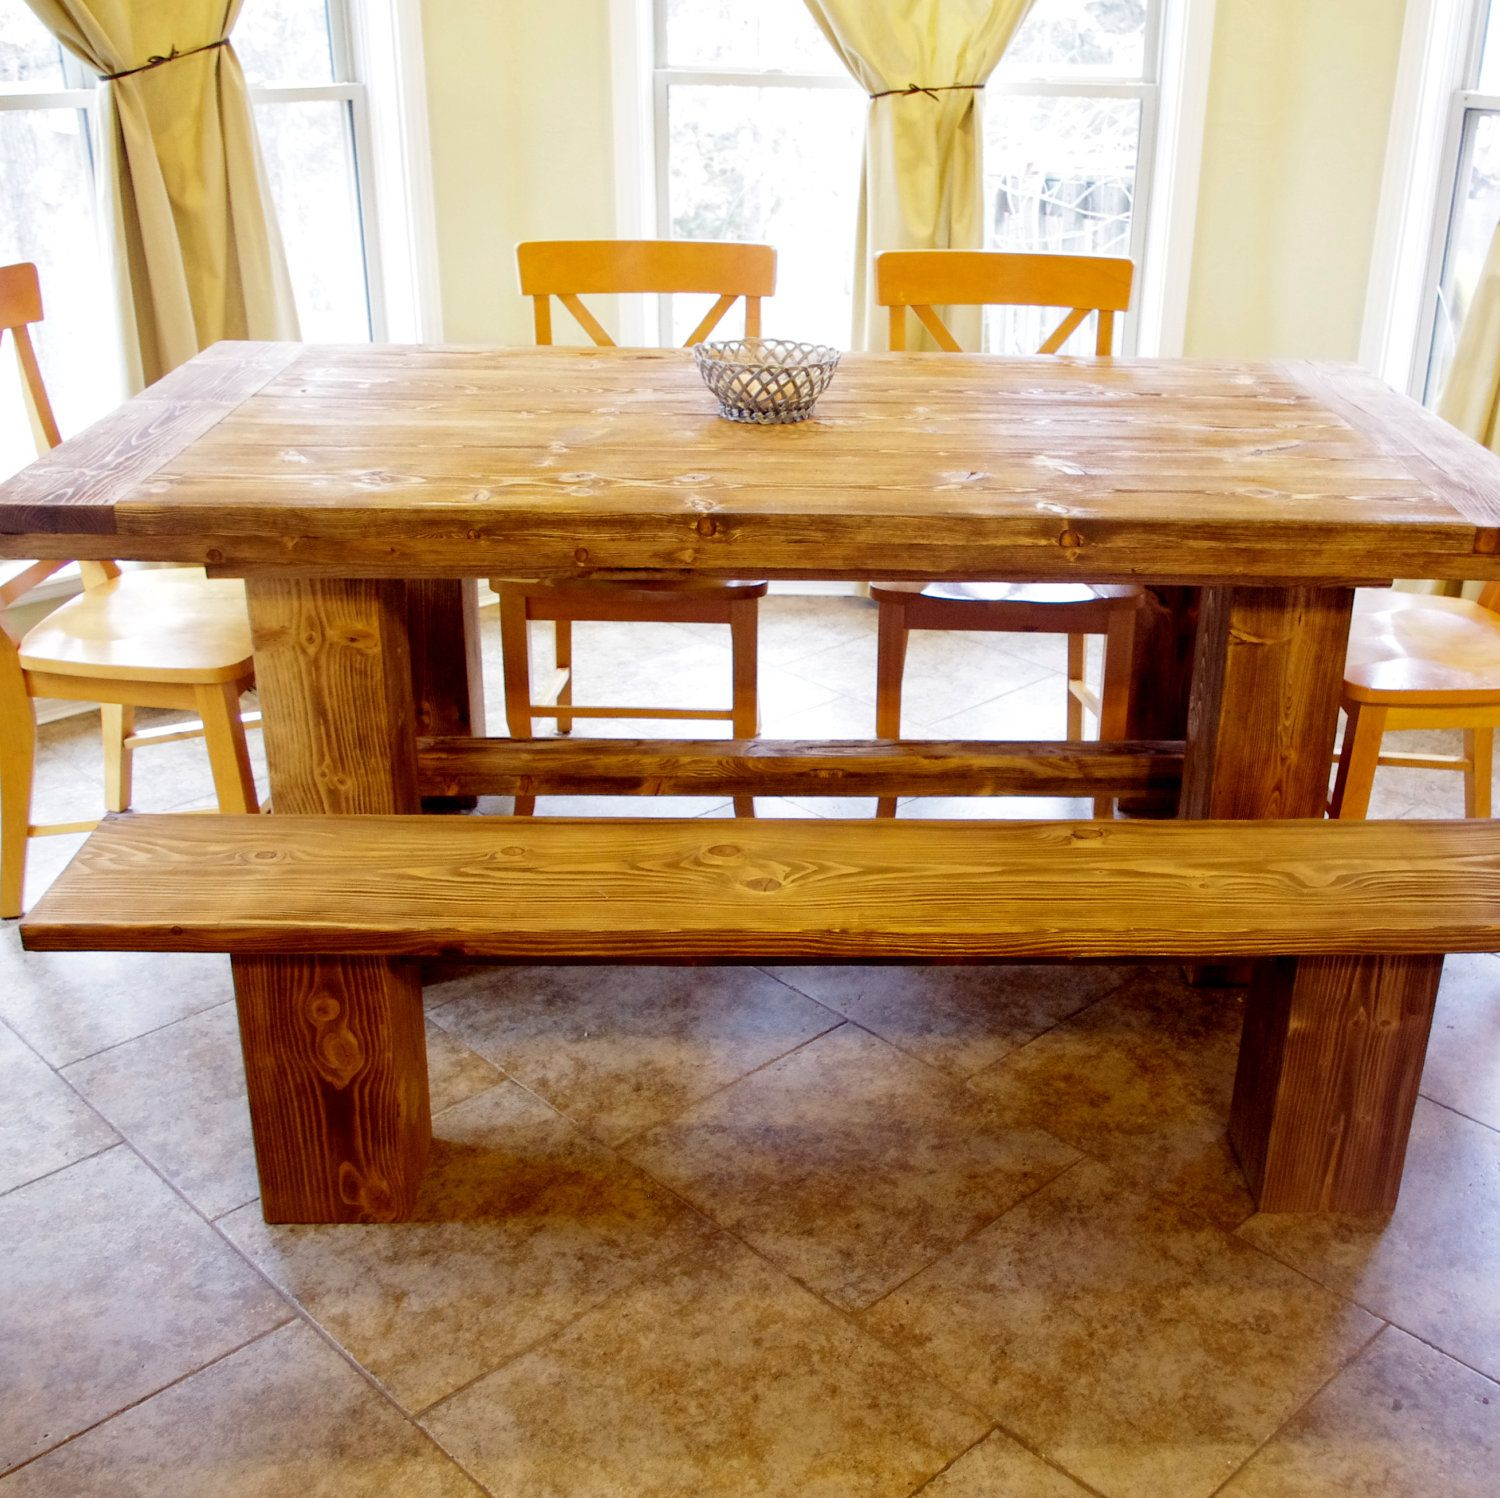 Rustic Pine Farmhouse Table and benches  my dream kitchen ...